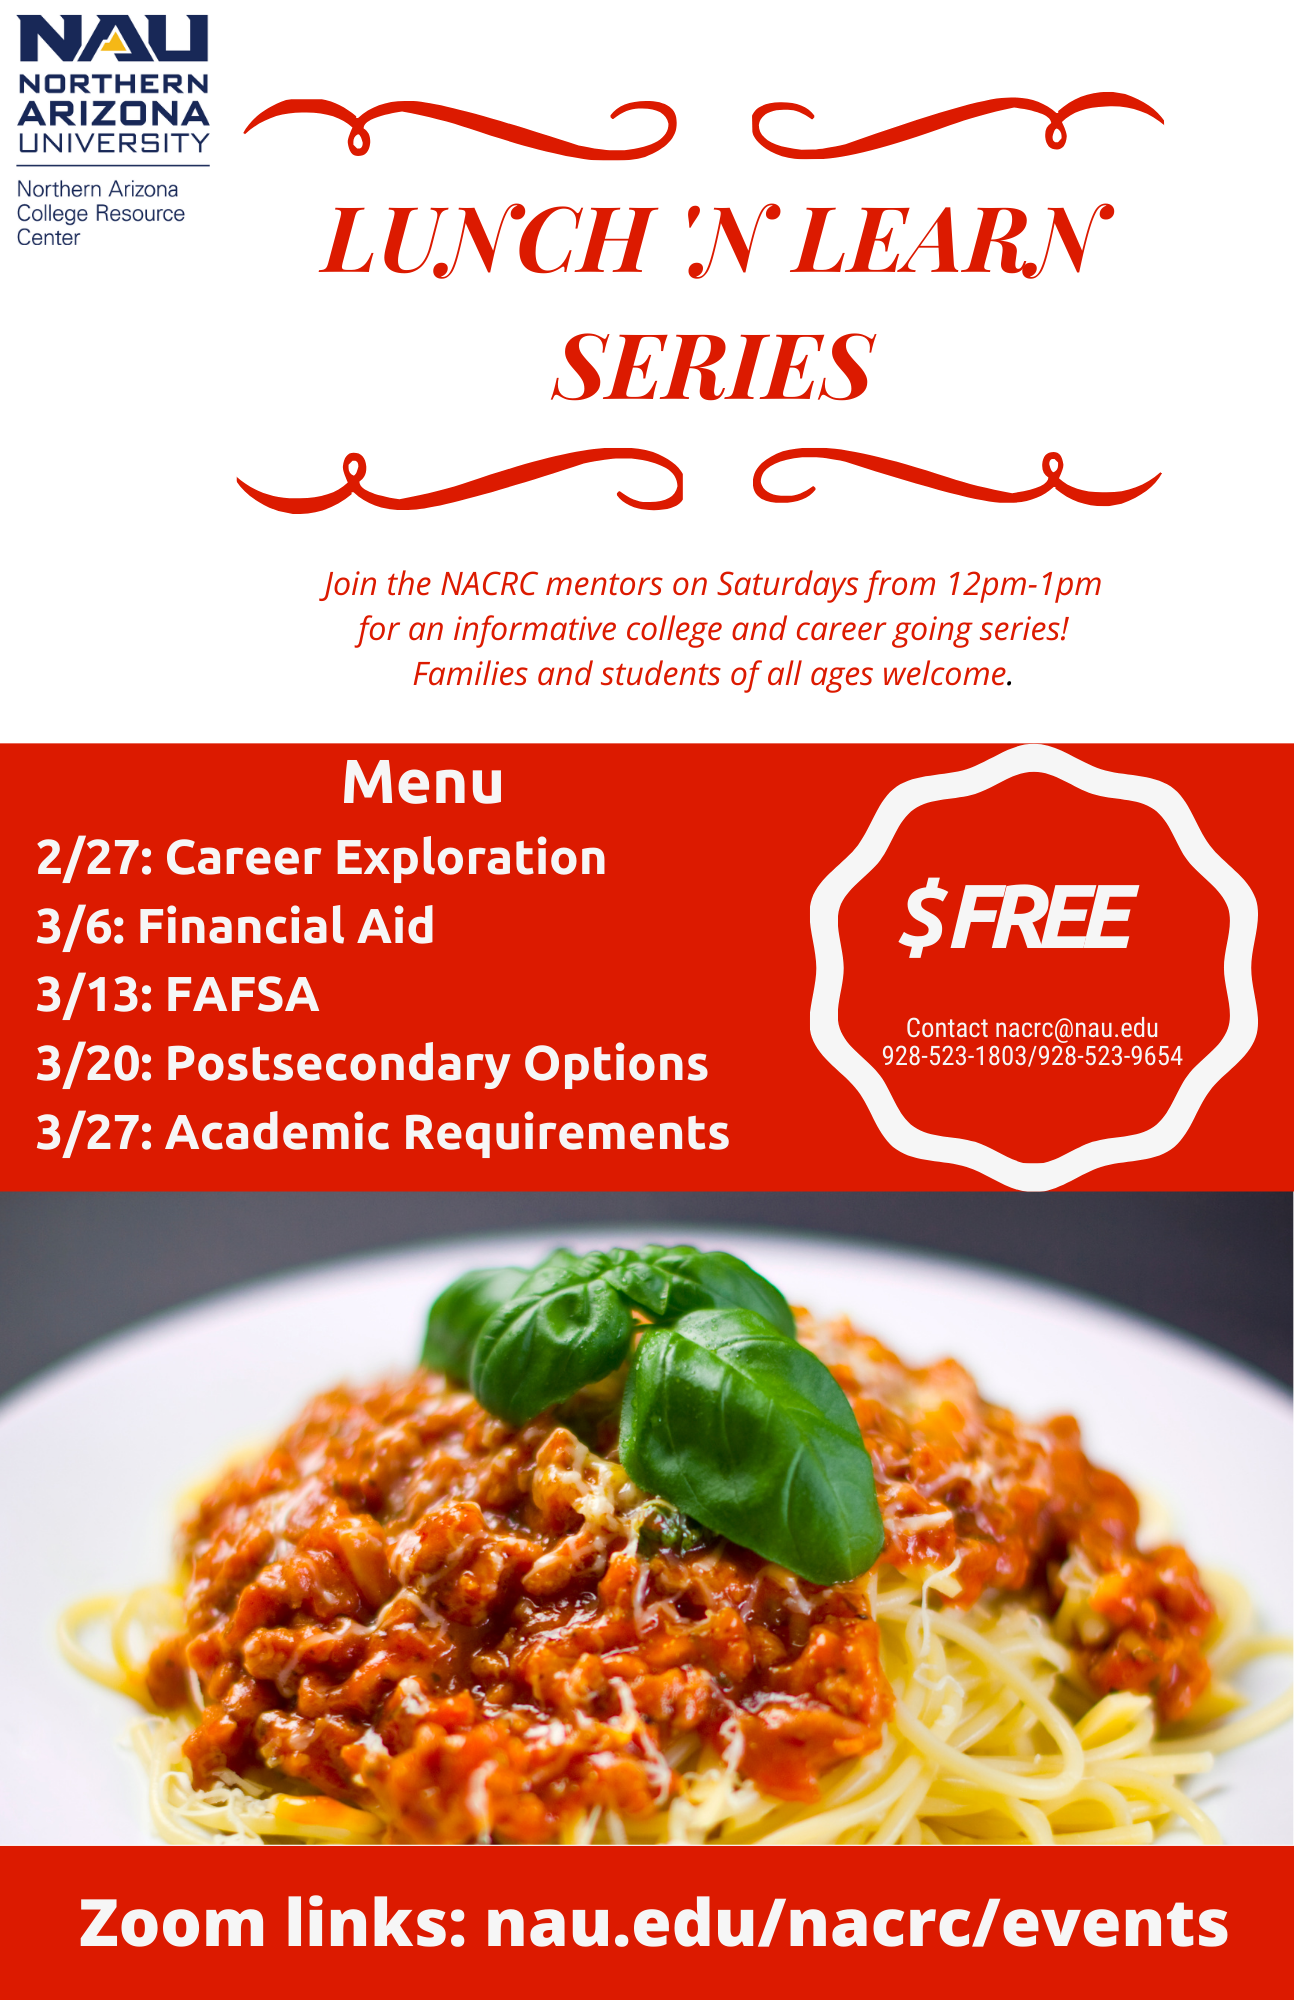 Lunch 'n Learn Series flyer (1).png